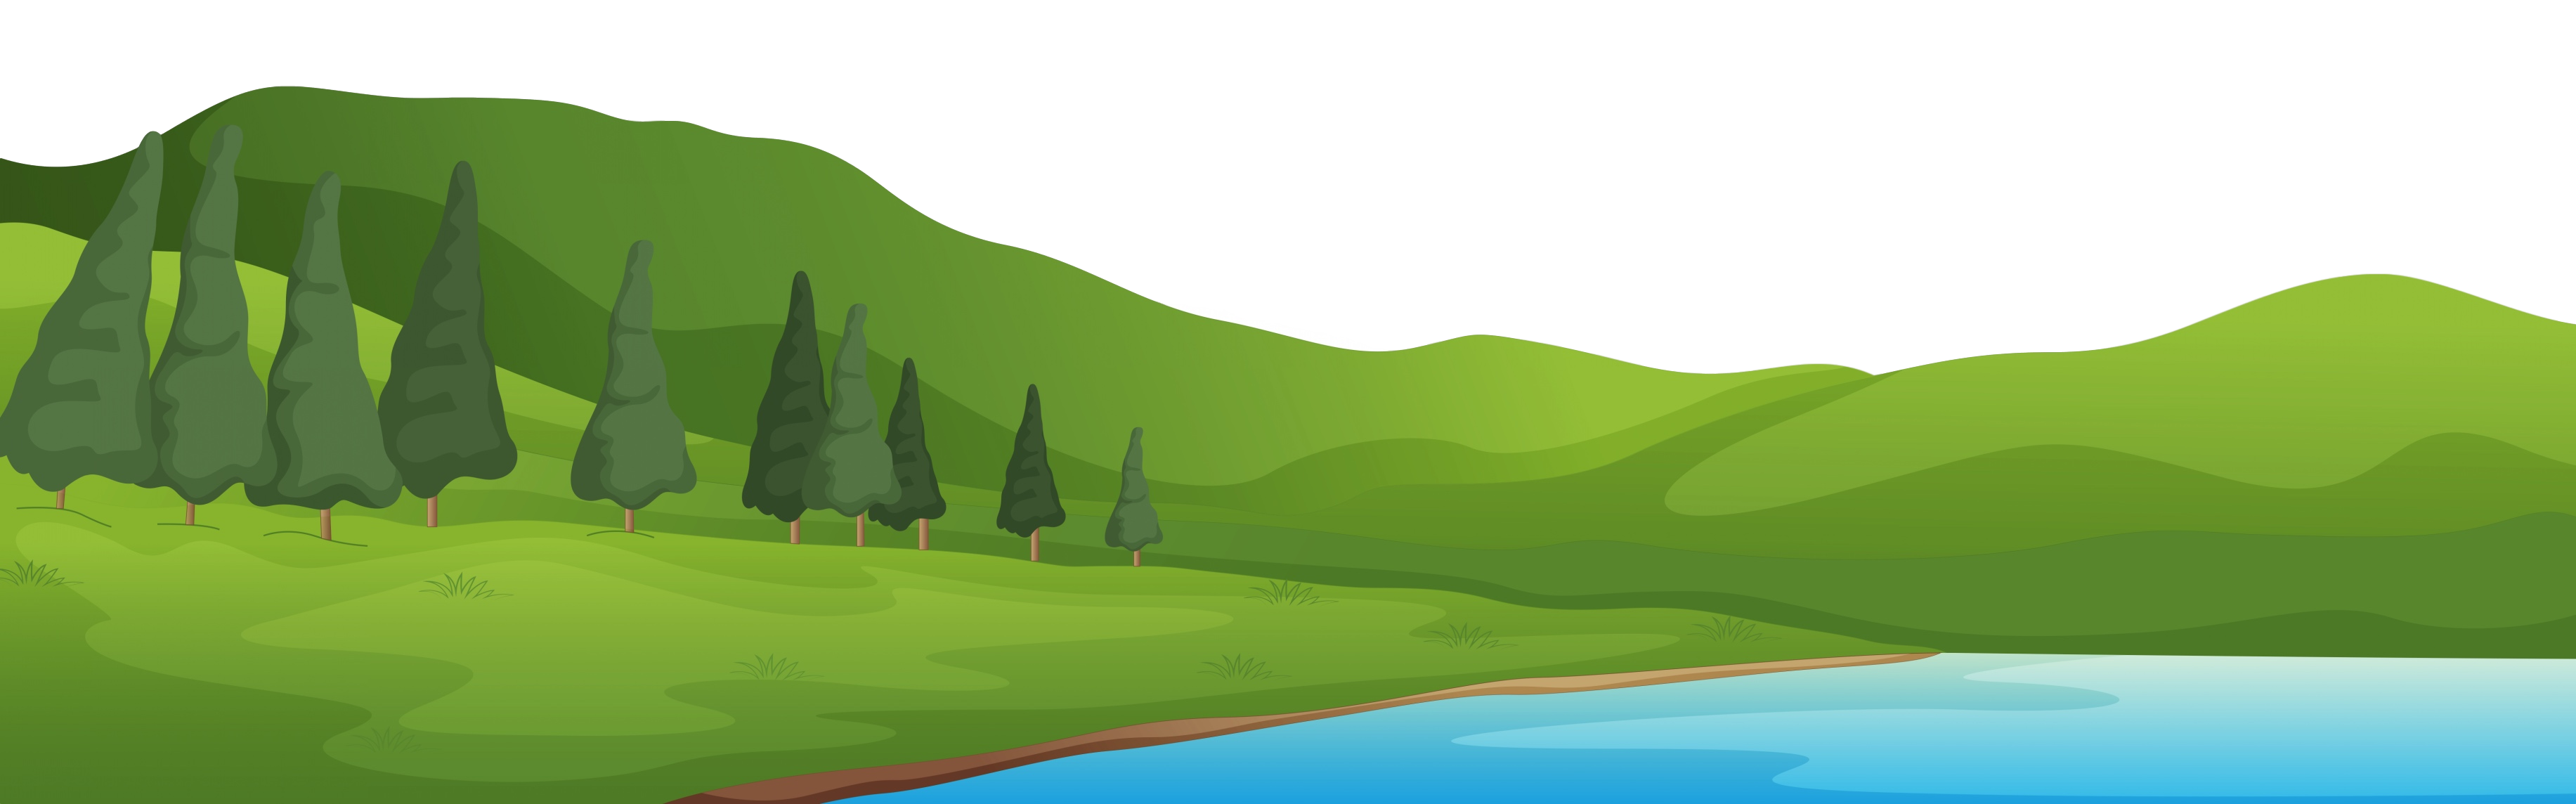 Hill clipart green nature. Reducing our carbon footprint